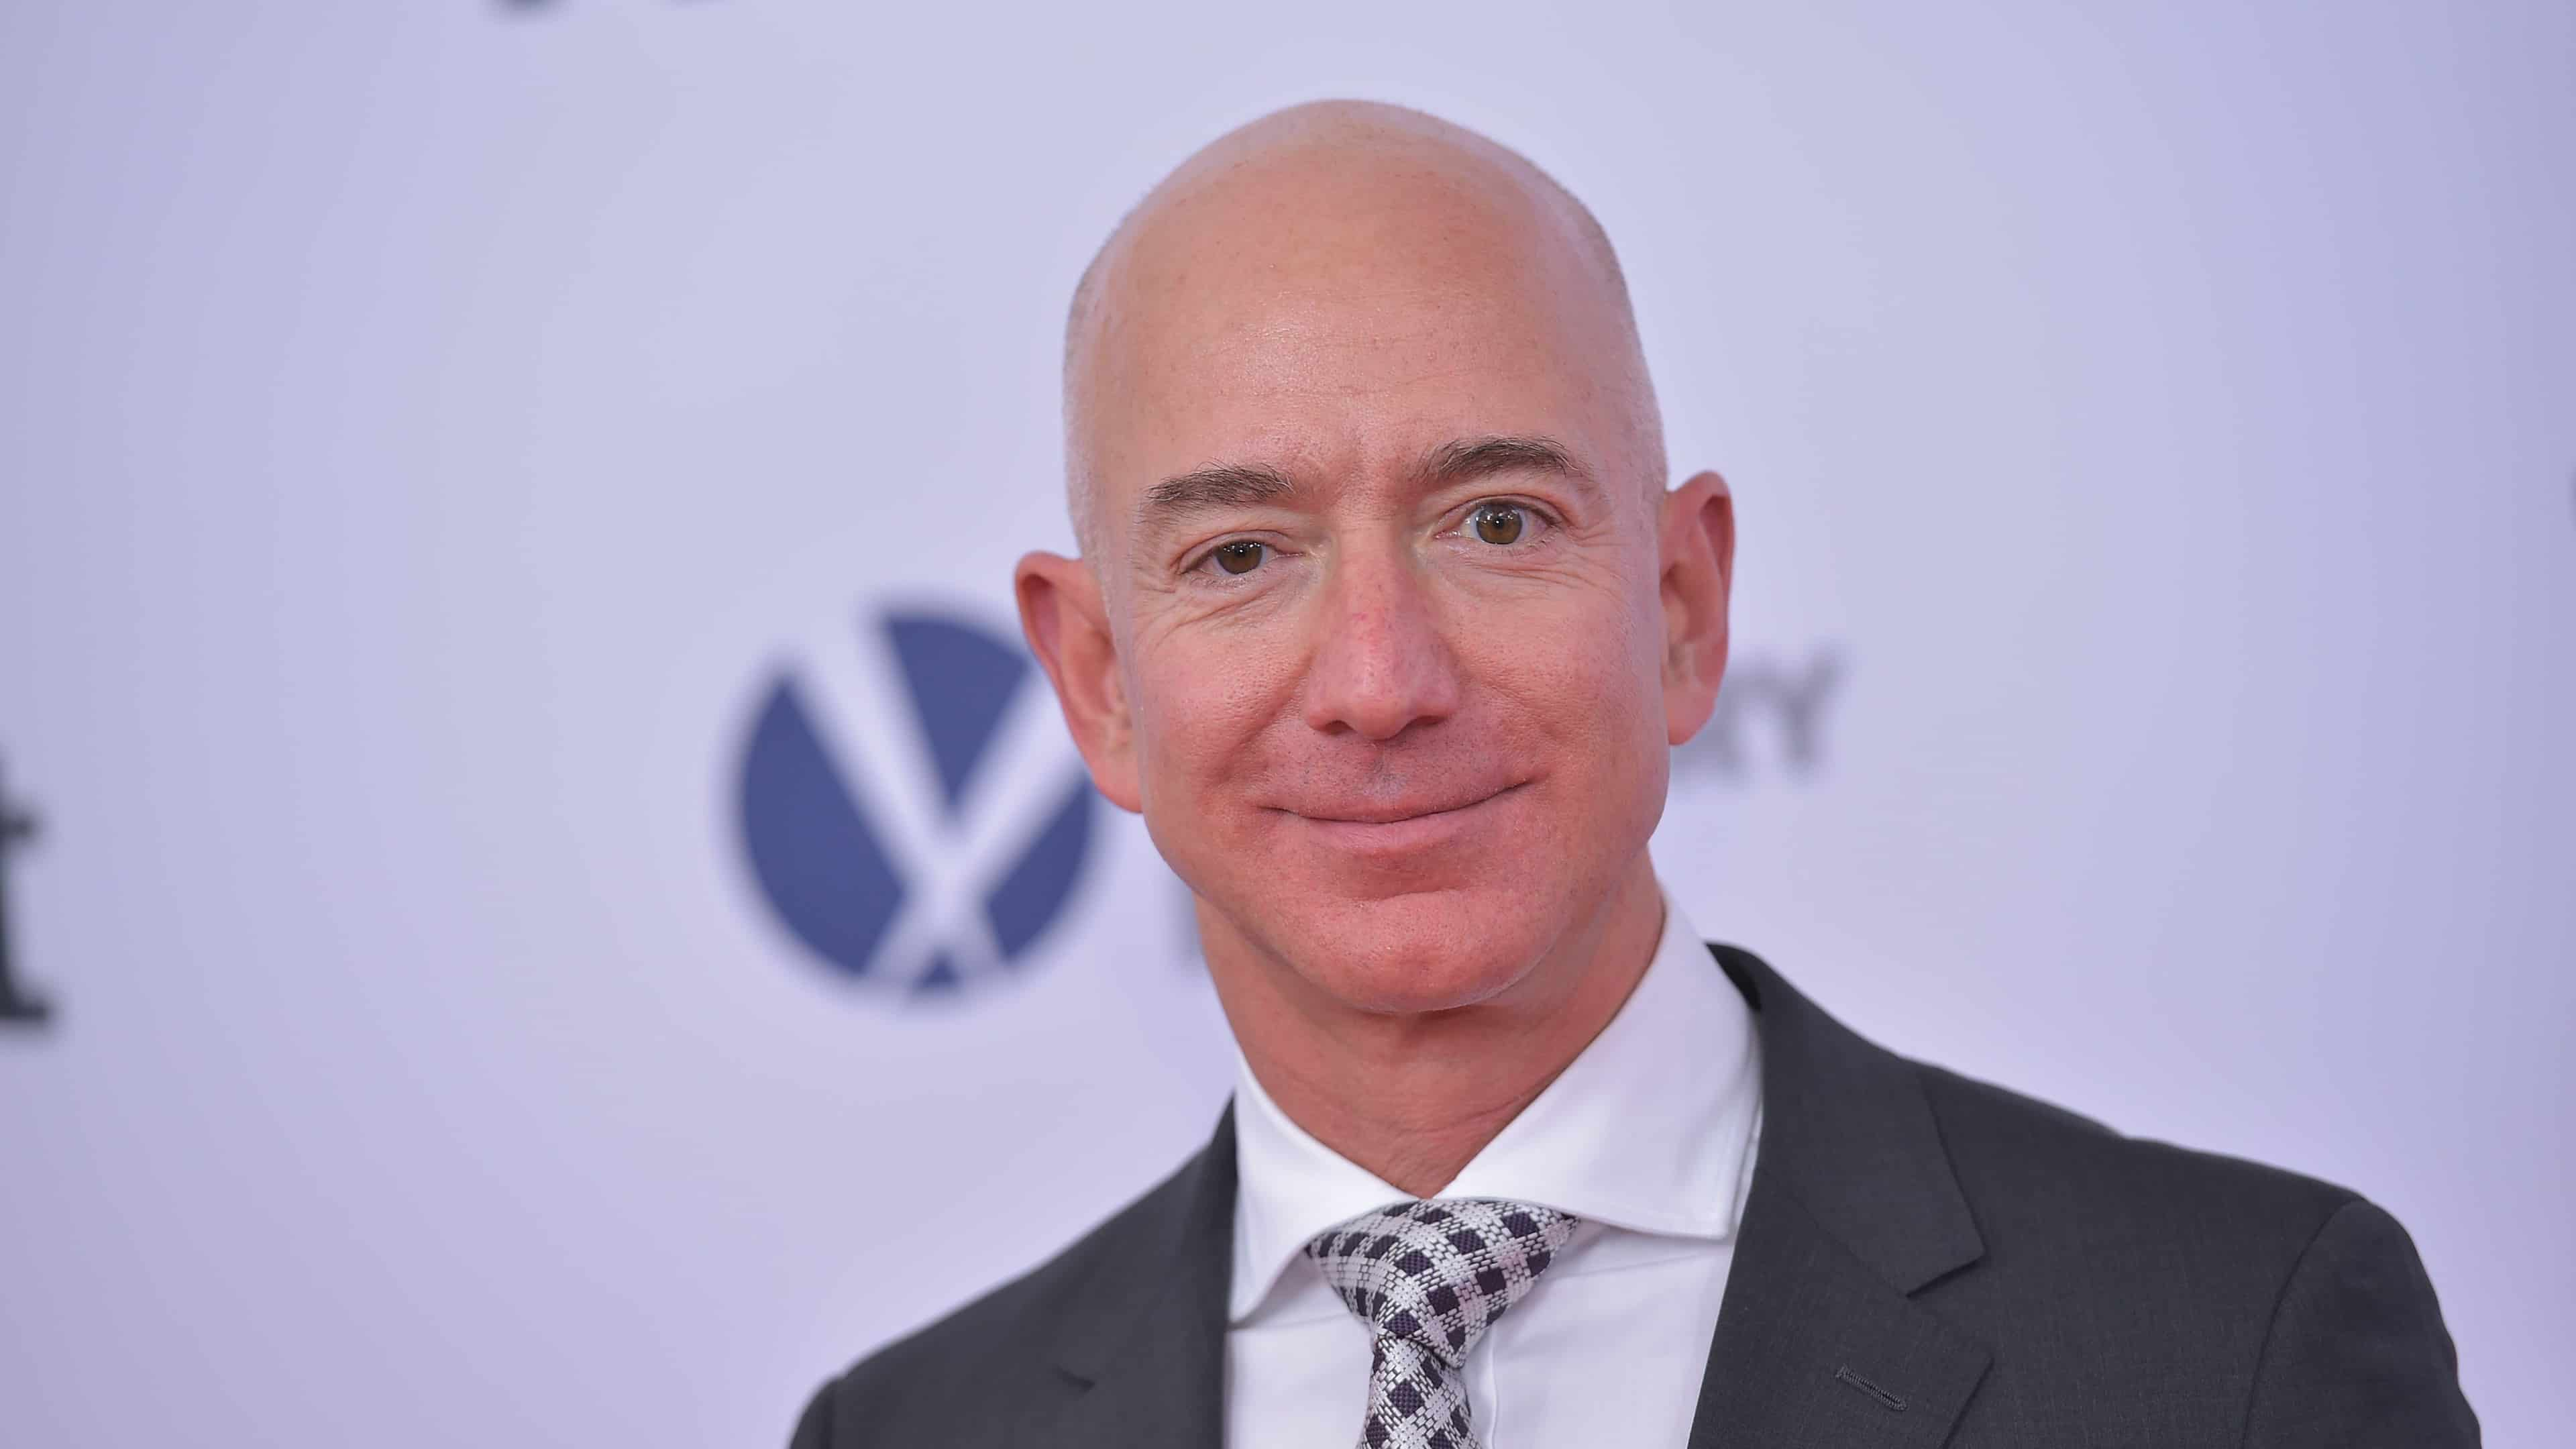 jeff bezos portrait uhd 4k wallpaper